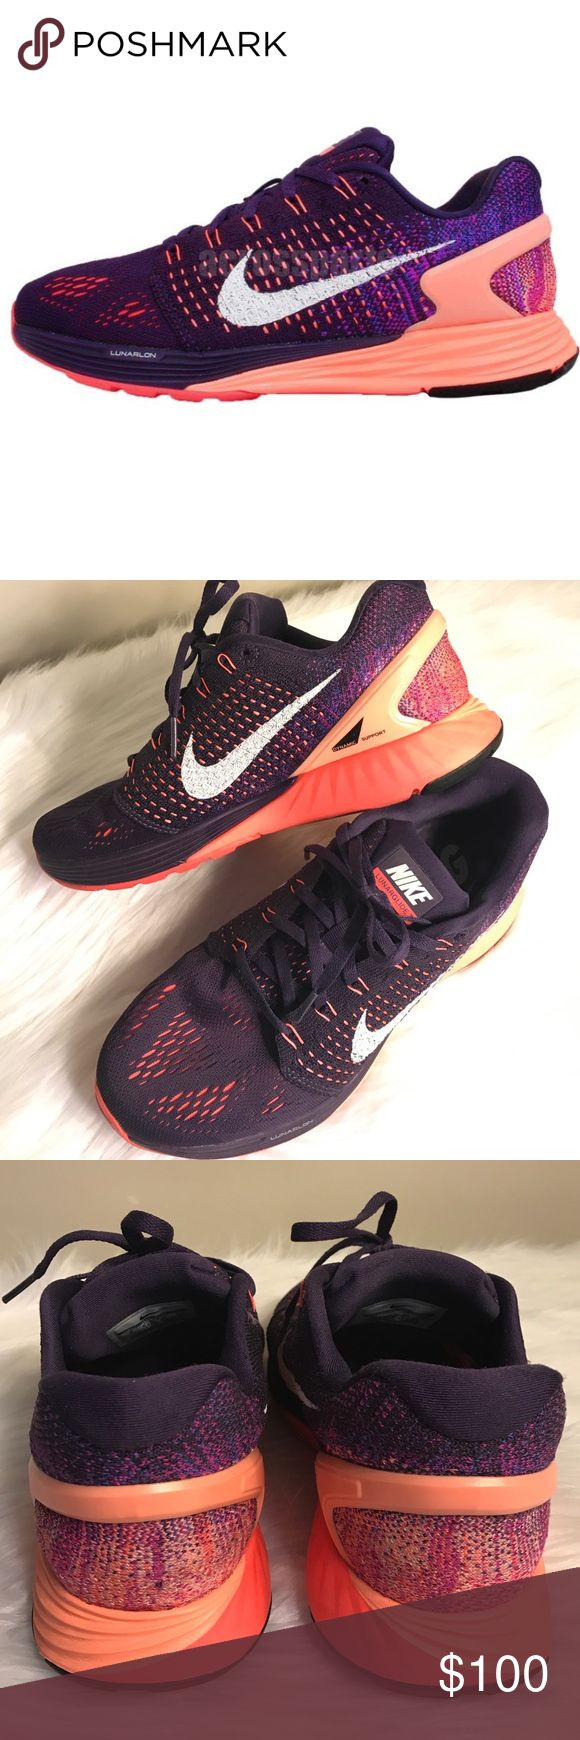 Wmns Nike Lunarglide 7 VII Used once, in good condition. Flyknit Purple Orange Womens Running Shoes Nike Shoes Sneakers